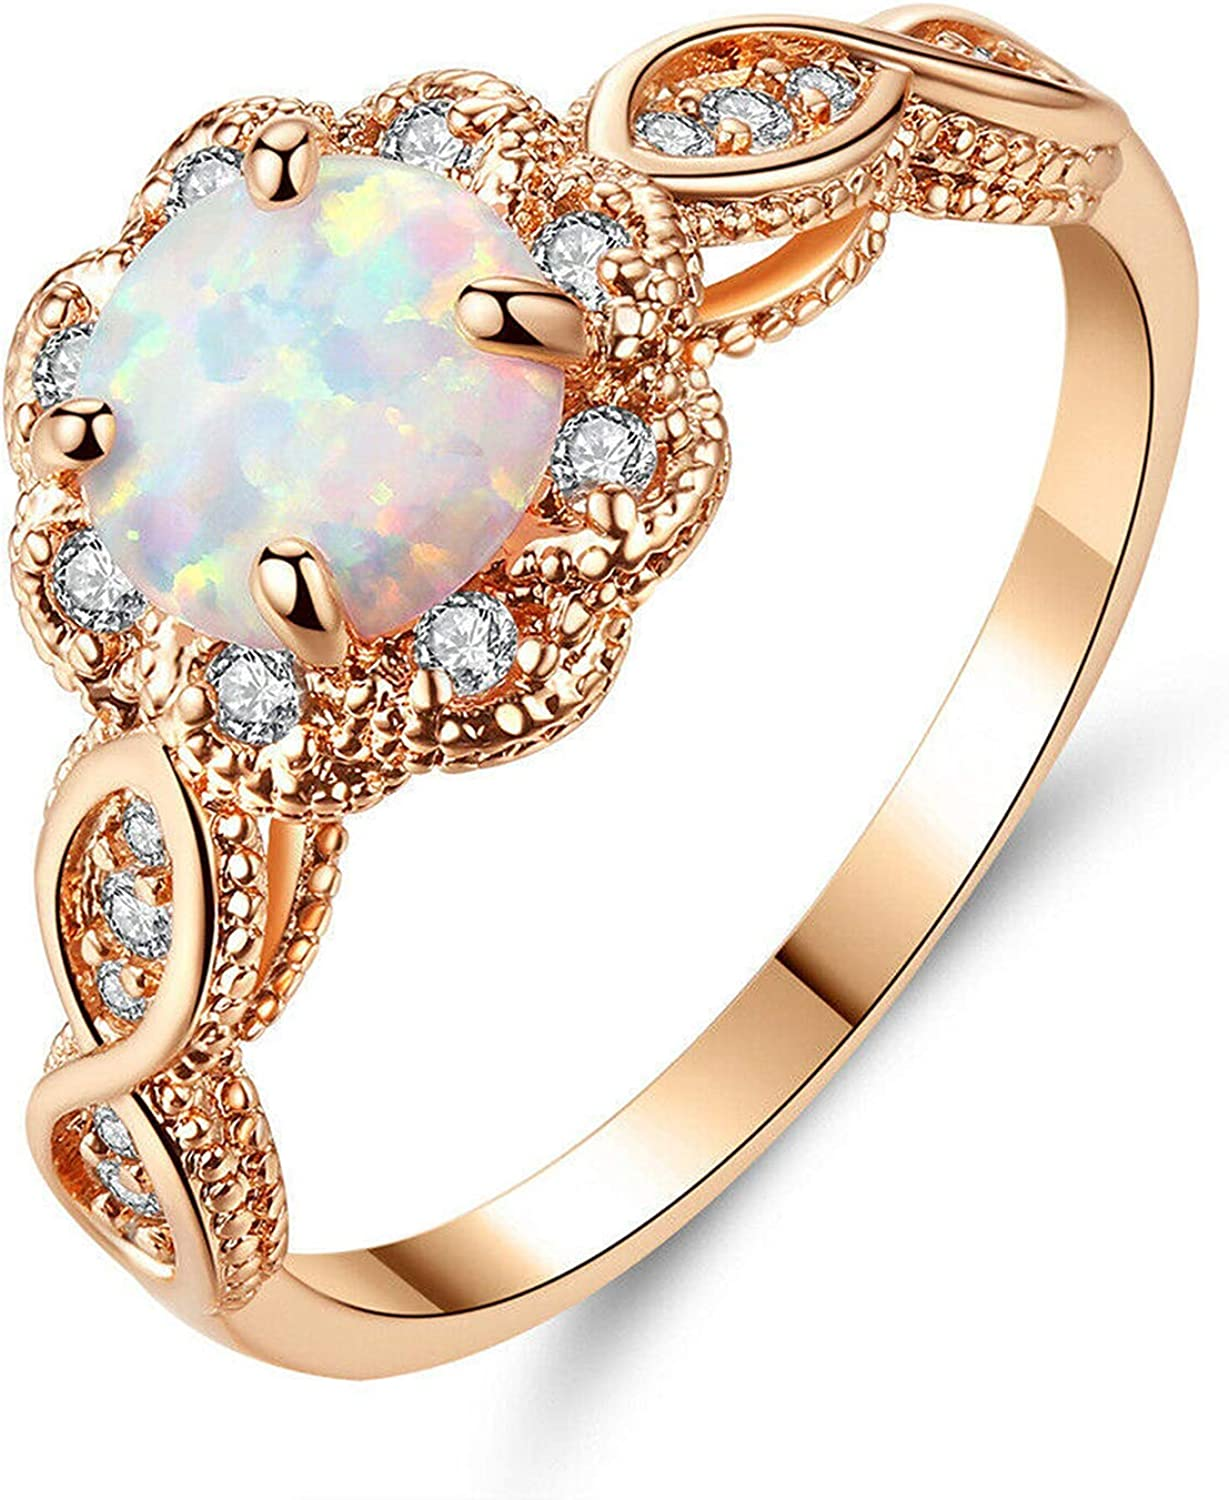 CiNily 18K Gold Plated Opal Ring- White Fire Opal & Amethyst & Cubic Zirconia Women Jewelry Gemstone Engagement Anniversary Ring Size 5-12